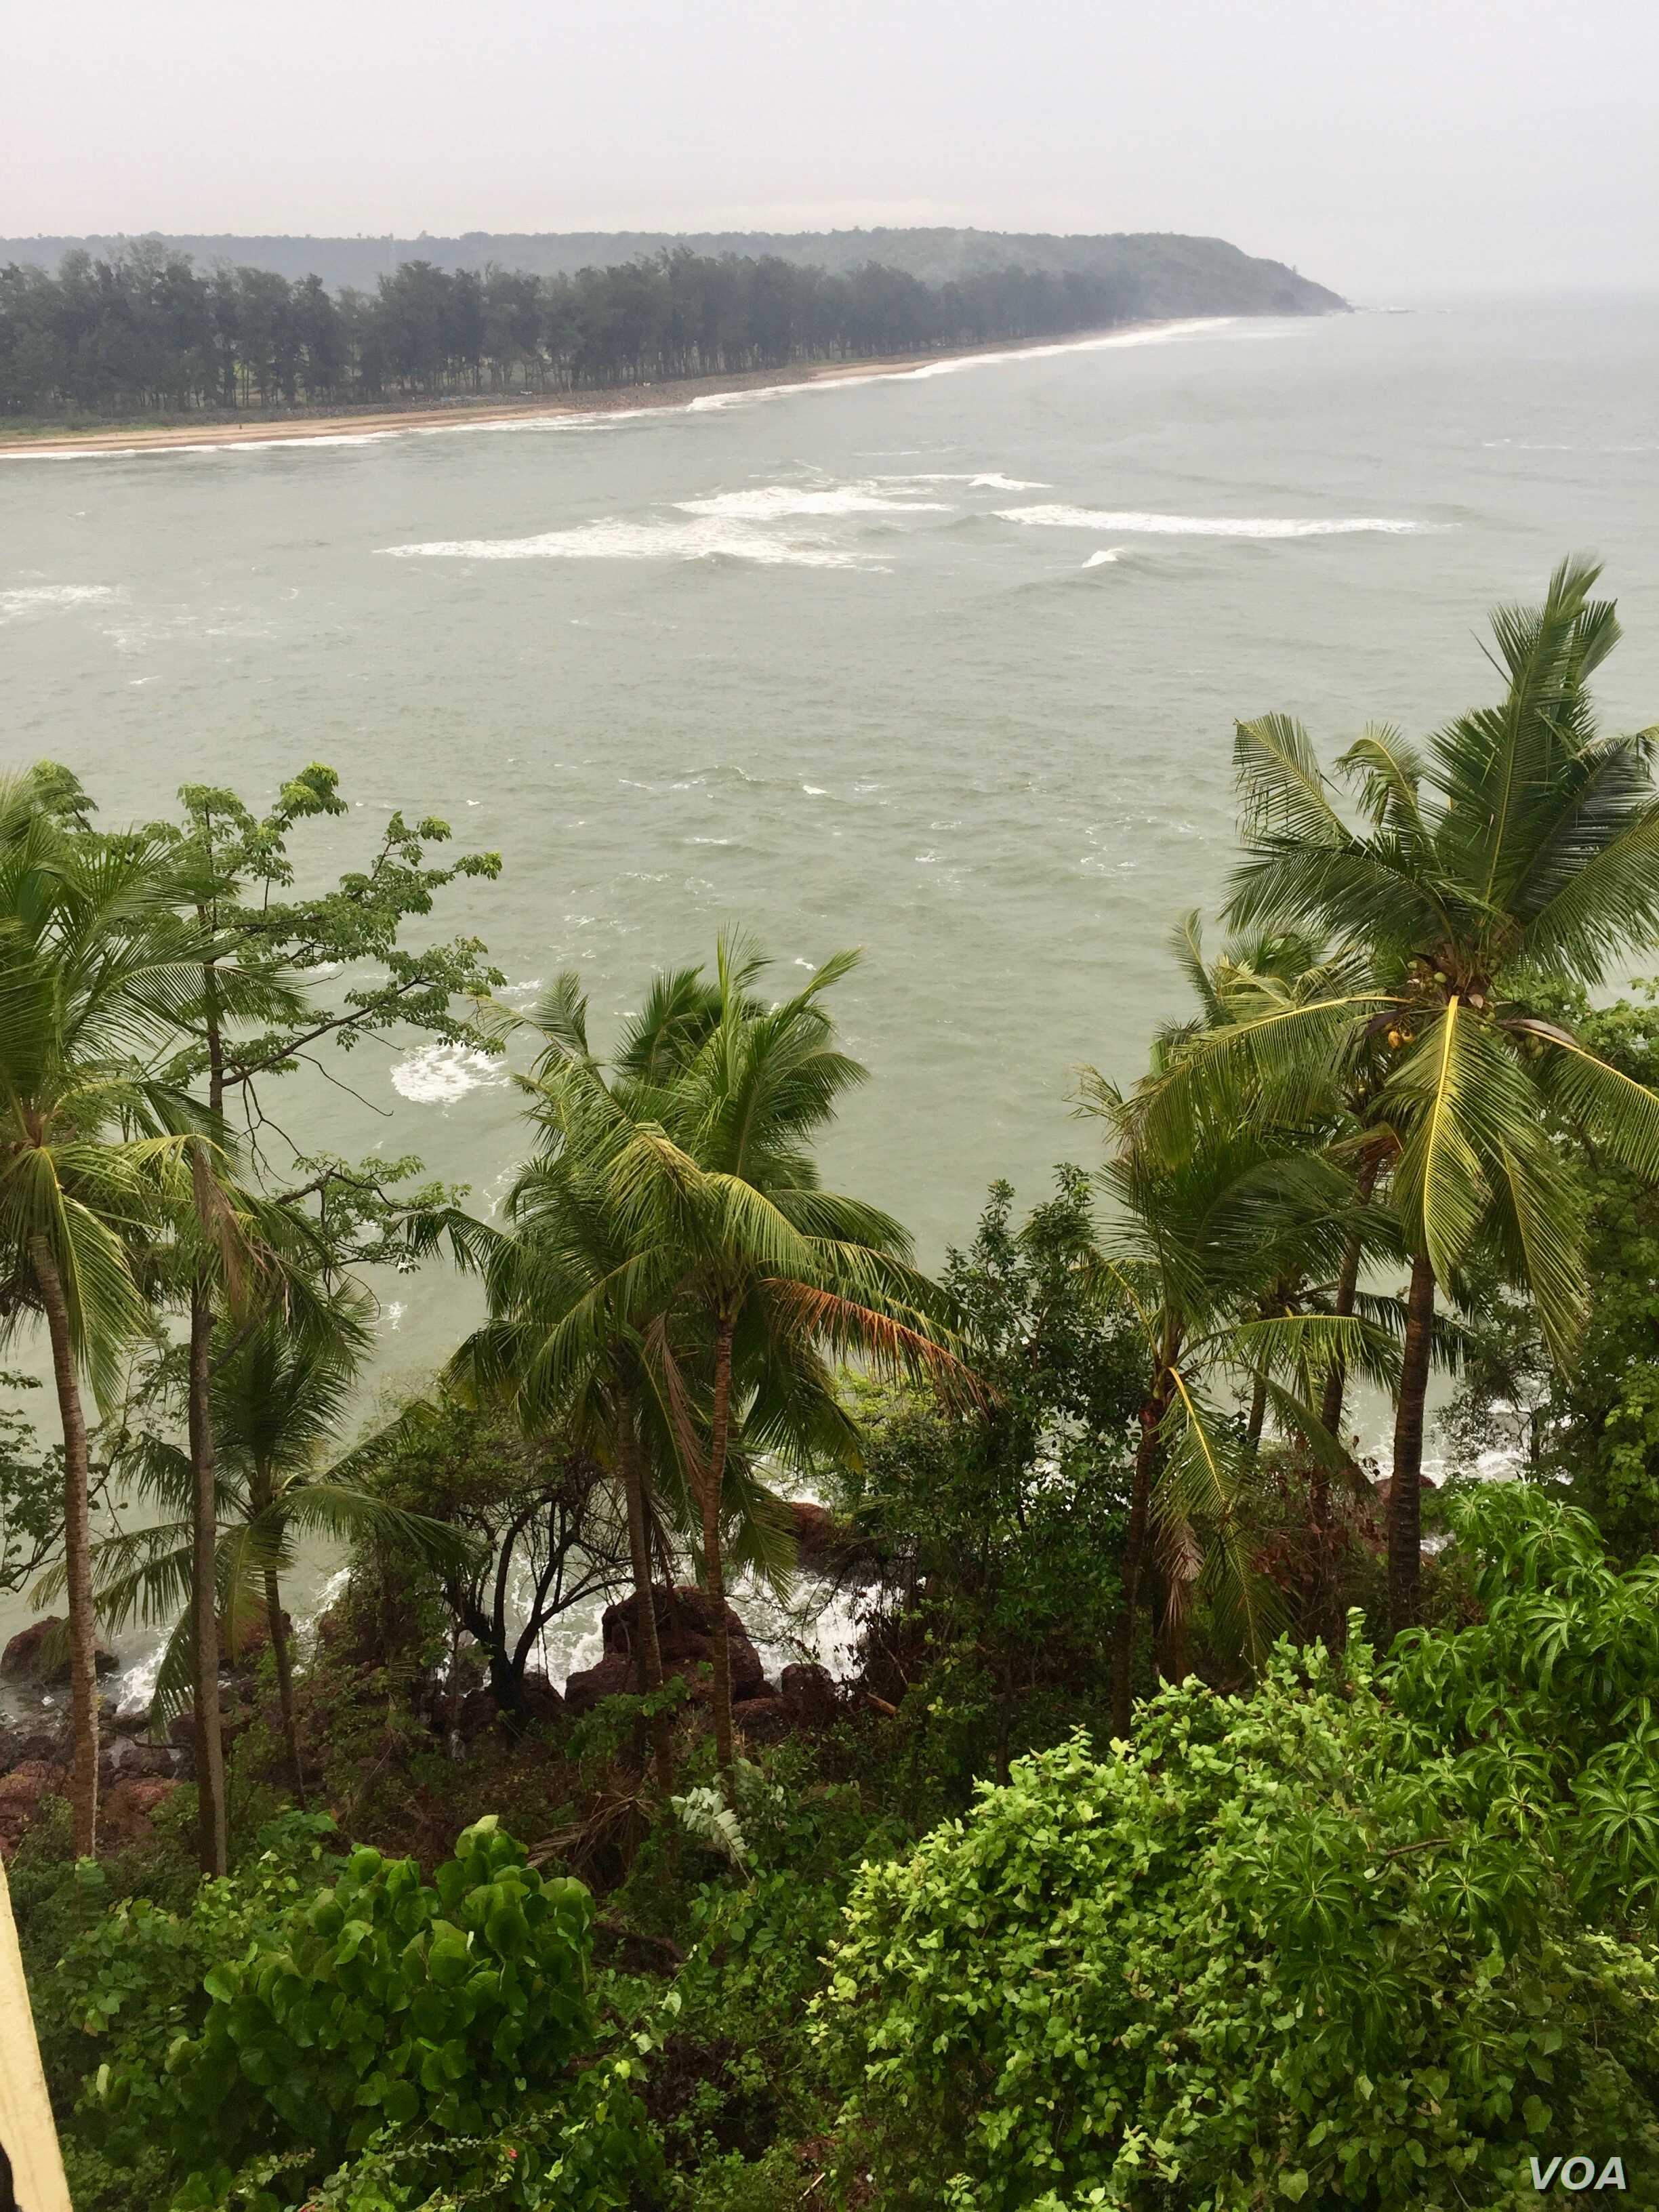 A growing number of people from Delhi have relocated to Goa, a palm fringed, coastal city.